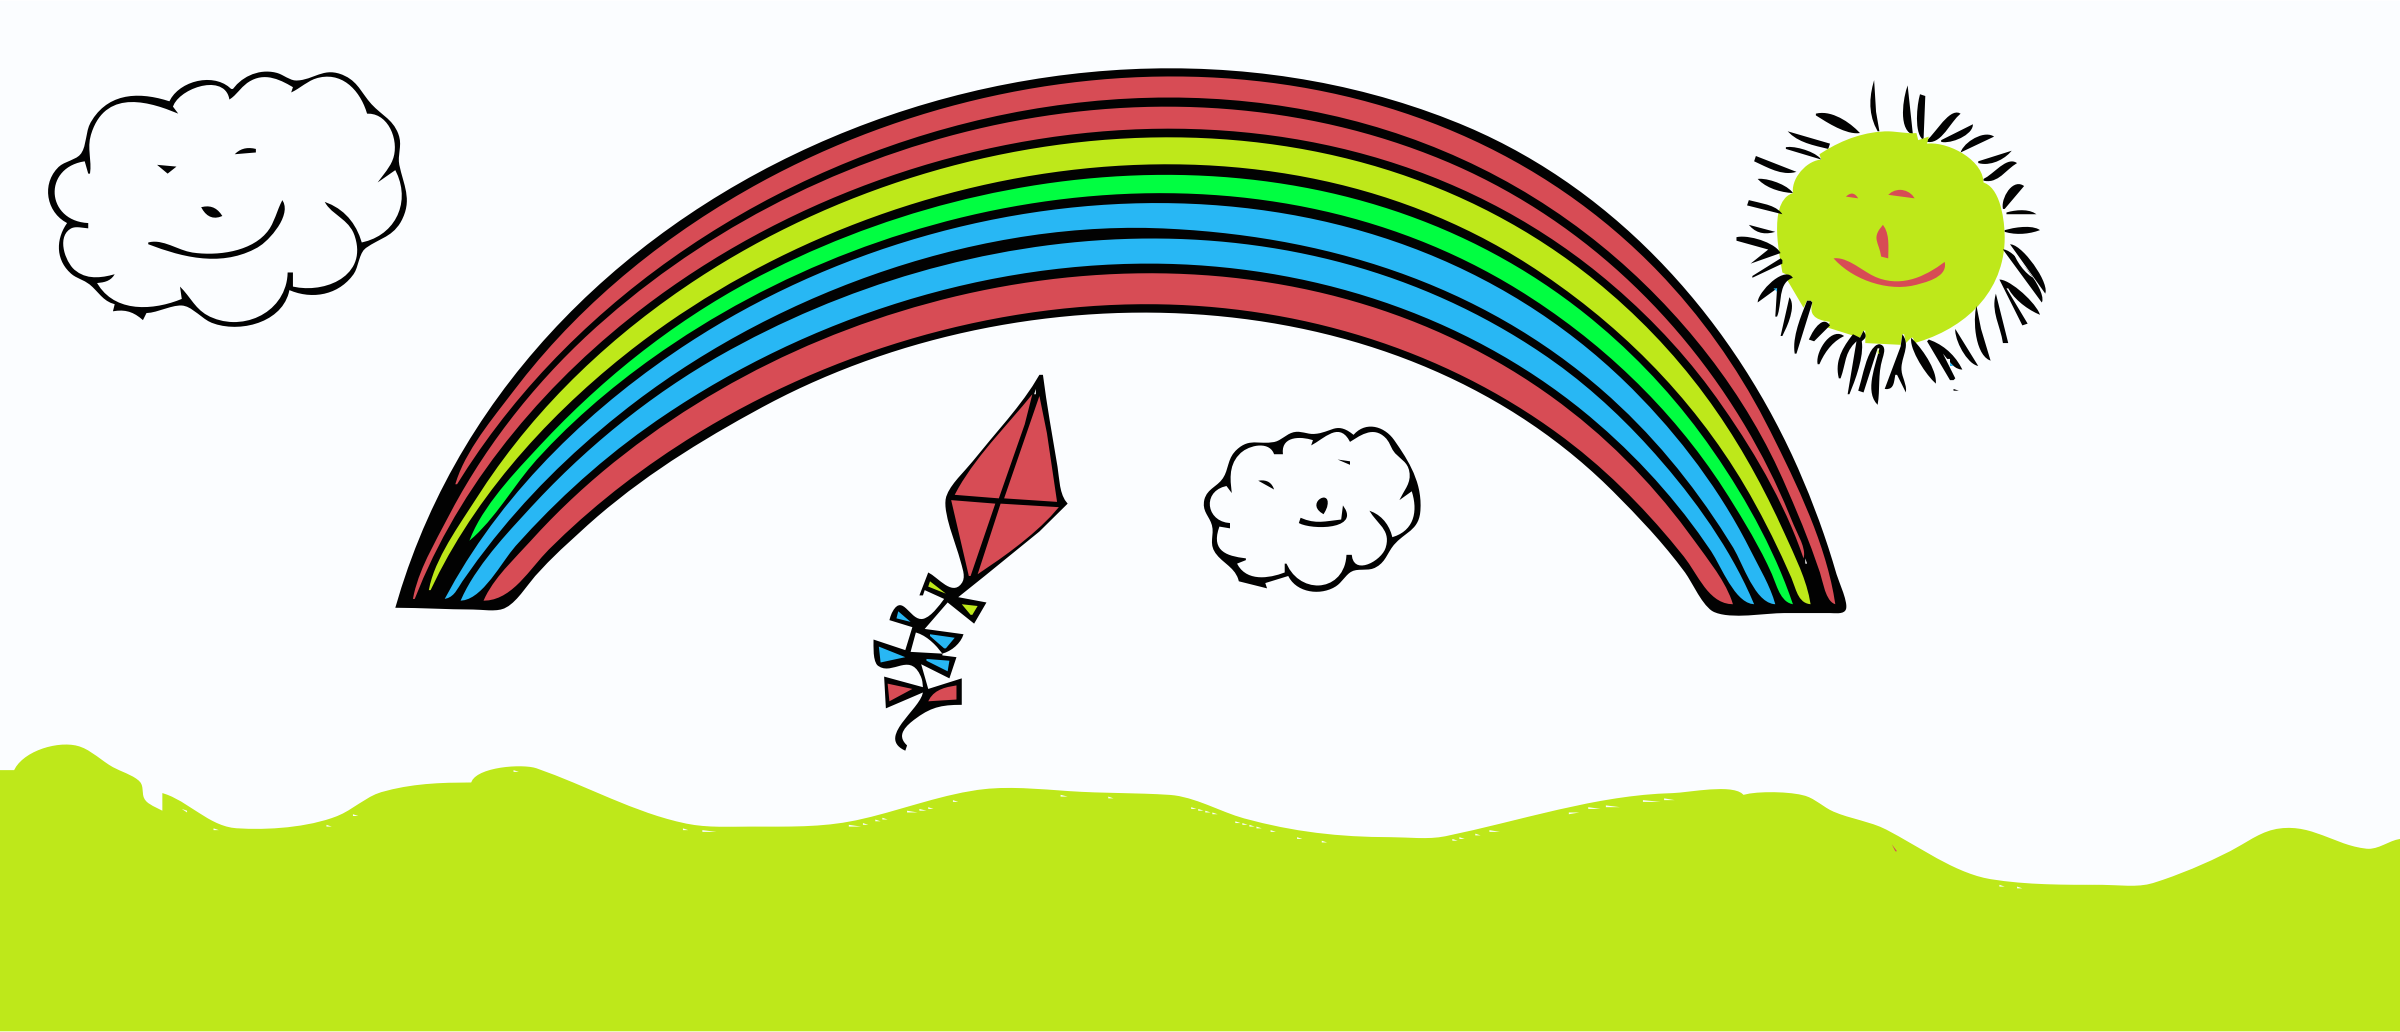 Rainbow Cartoon Png Happy Rainbow Cartoon